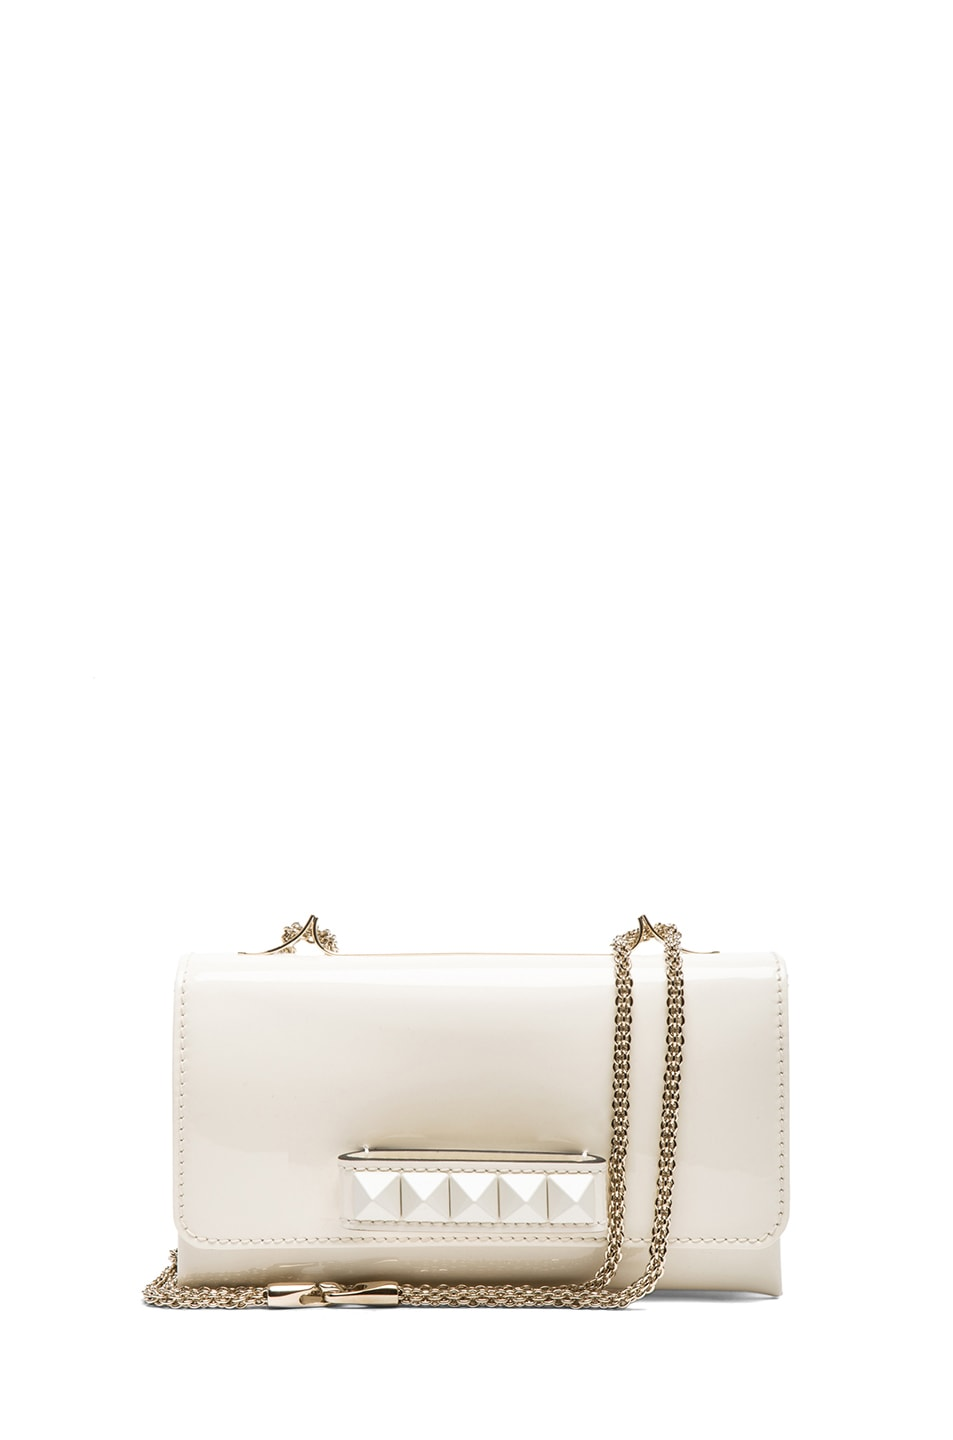 Image 1 of Valentino Medium Punkouture Flap Bag Patent in Light Ivory